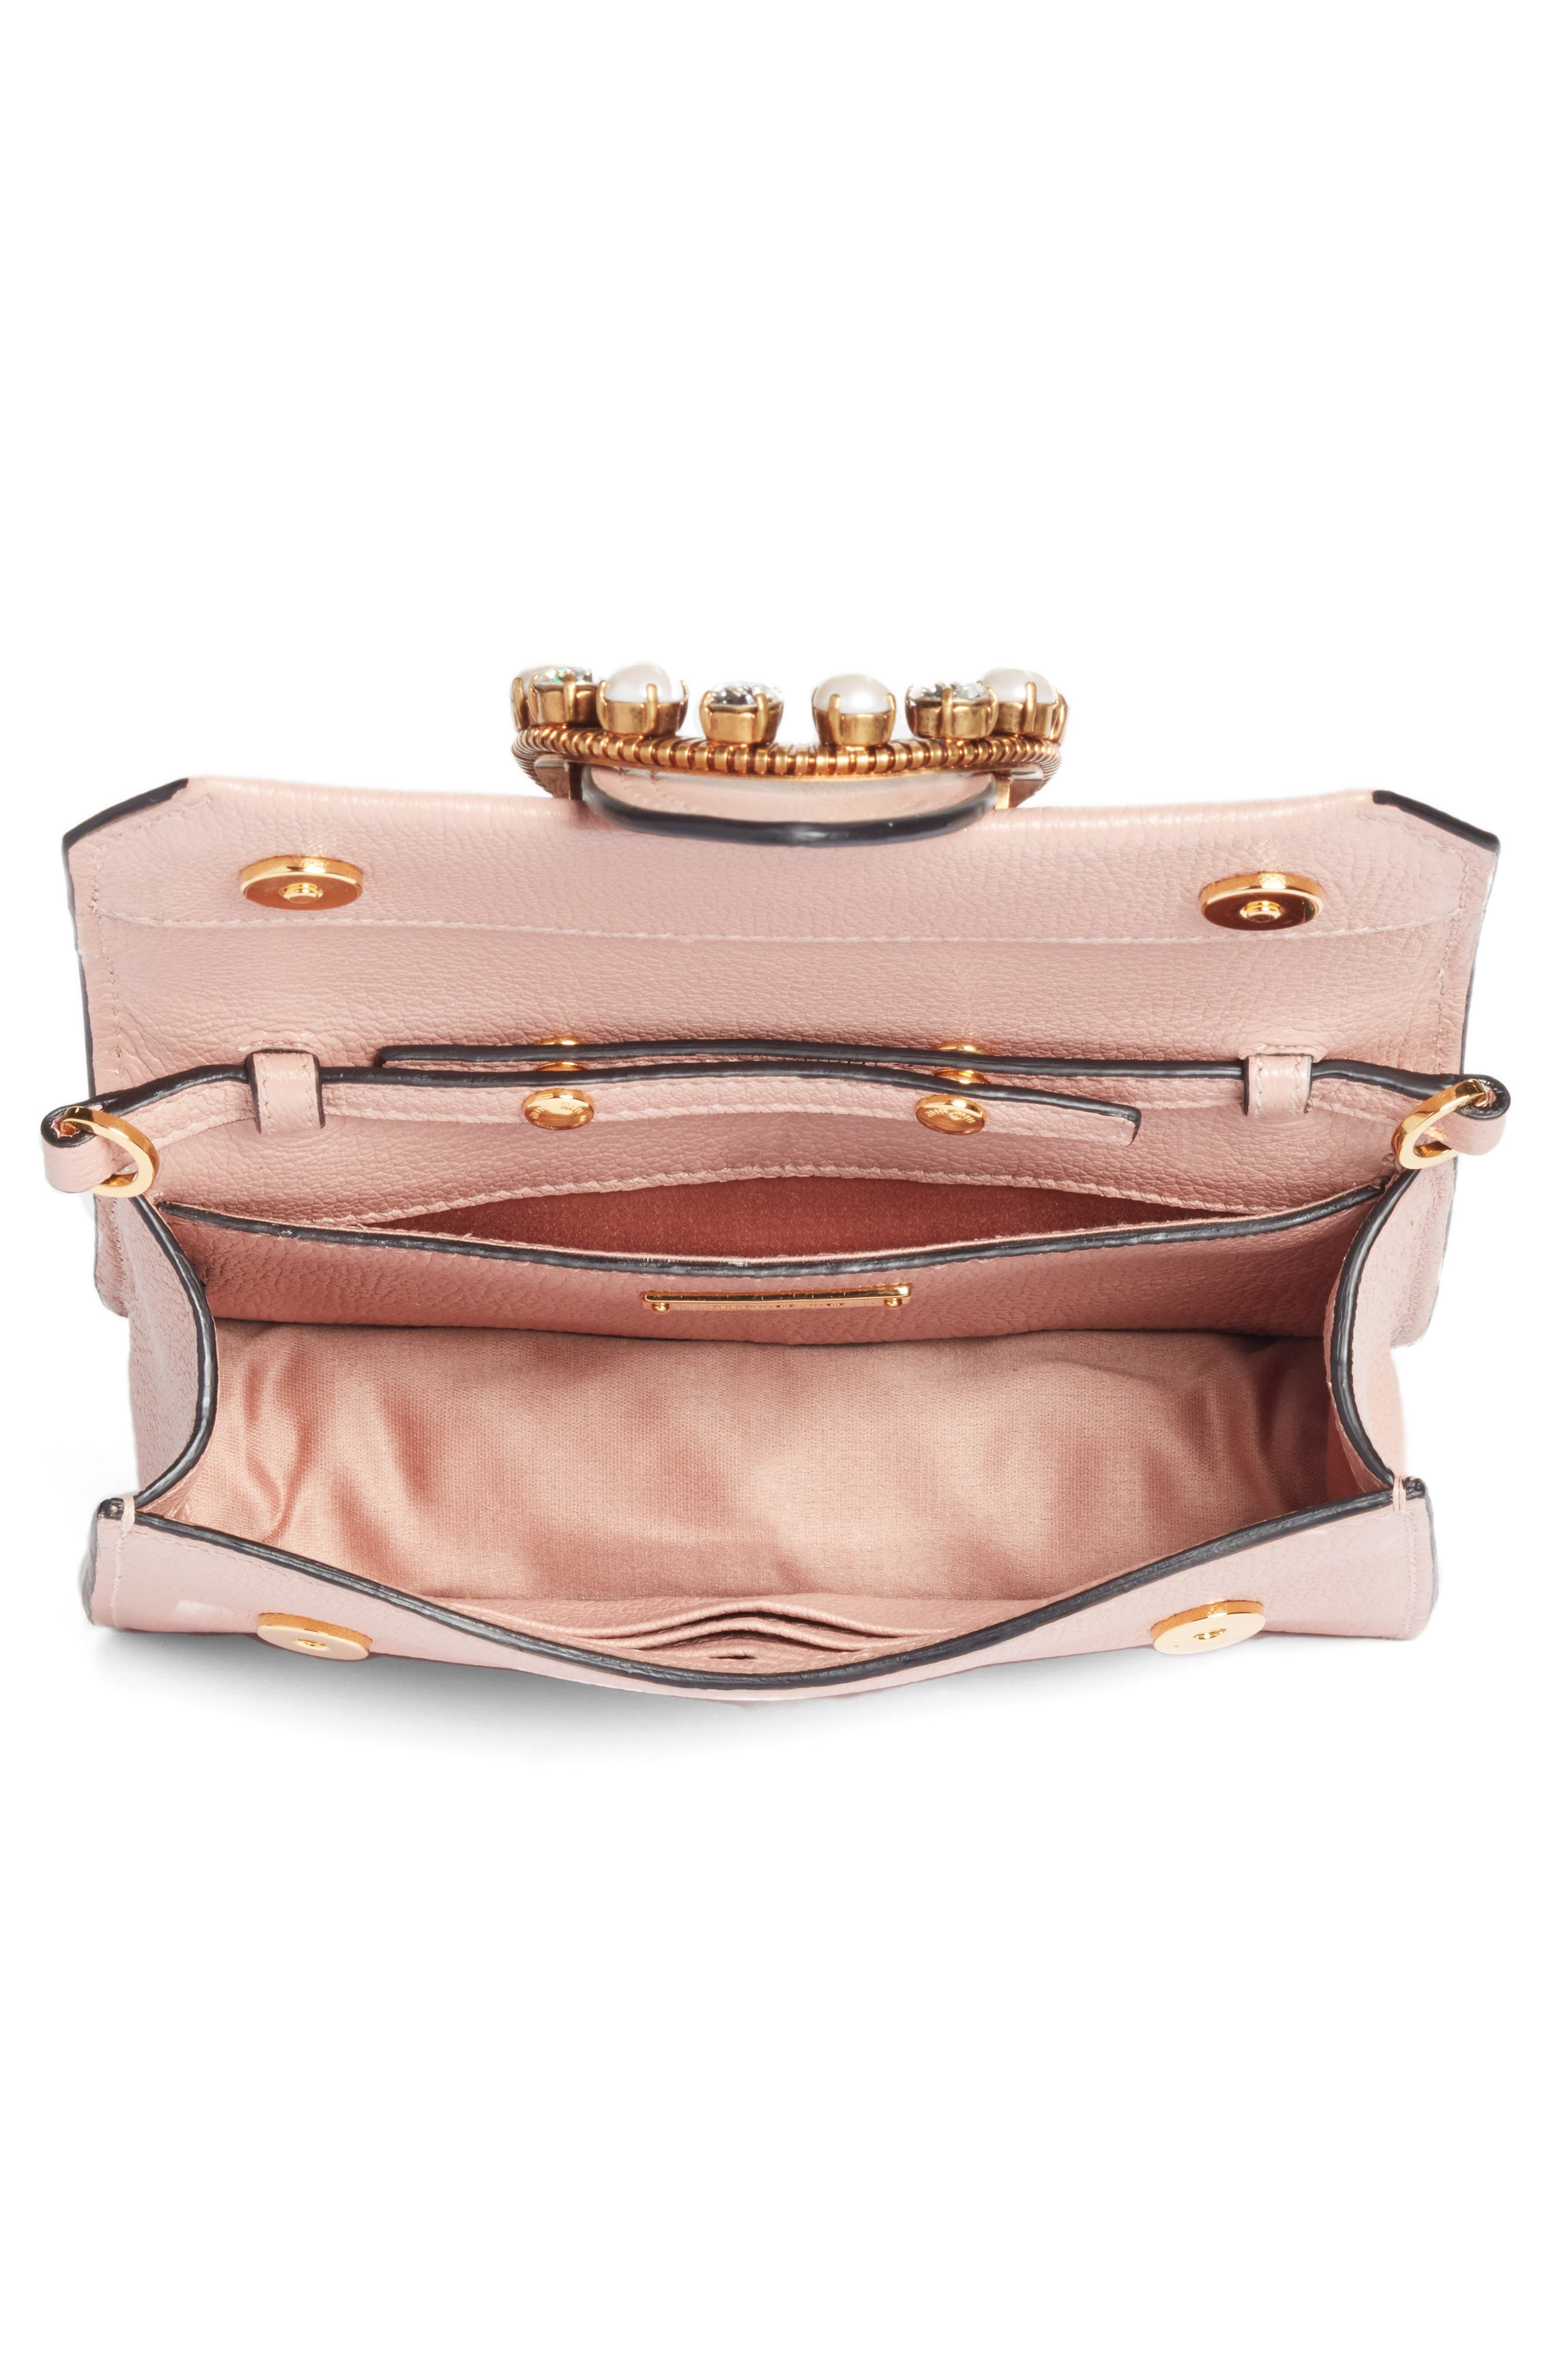 Lady Madras Crystal Embellished Leather Crossbody Bag,                             Alternate thumbnail 4, color,                             Orchidea